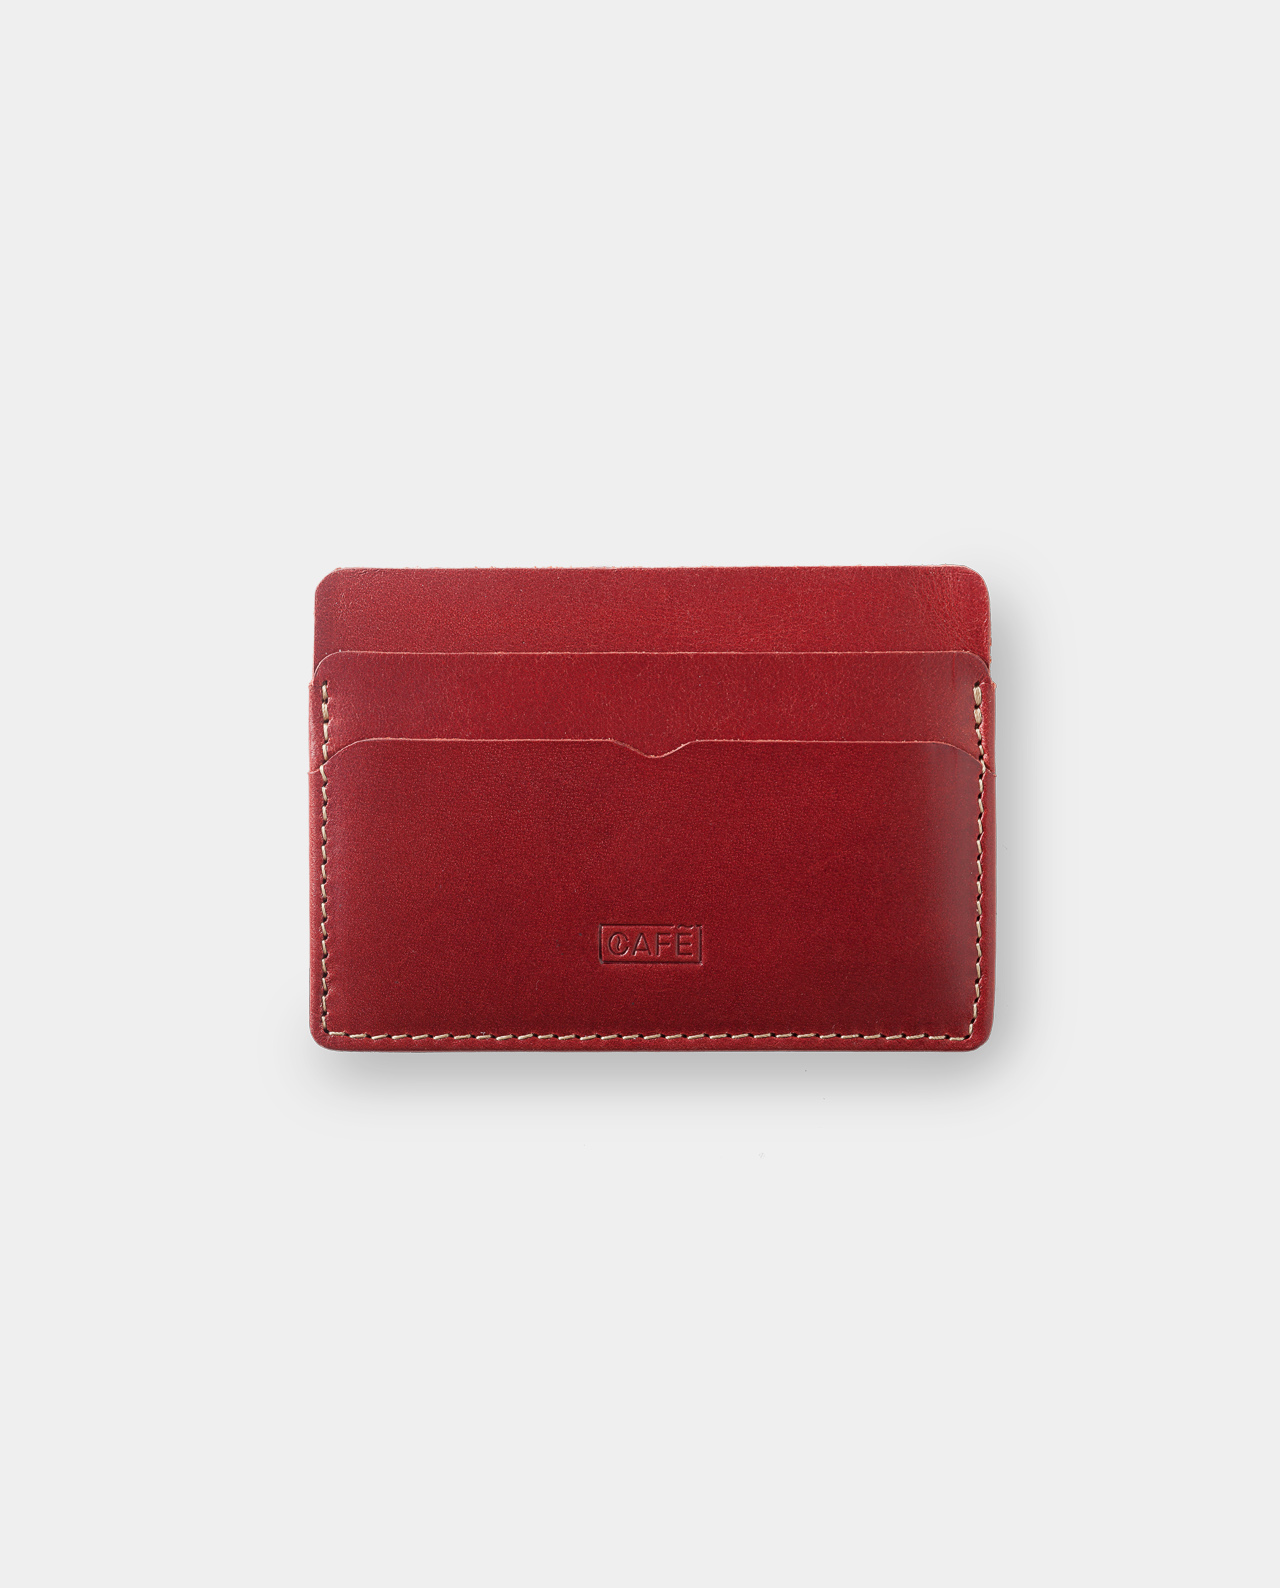 card holder red for cards and bills